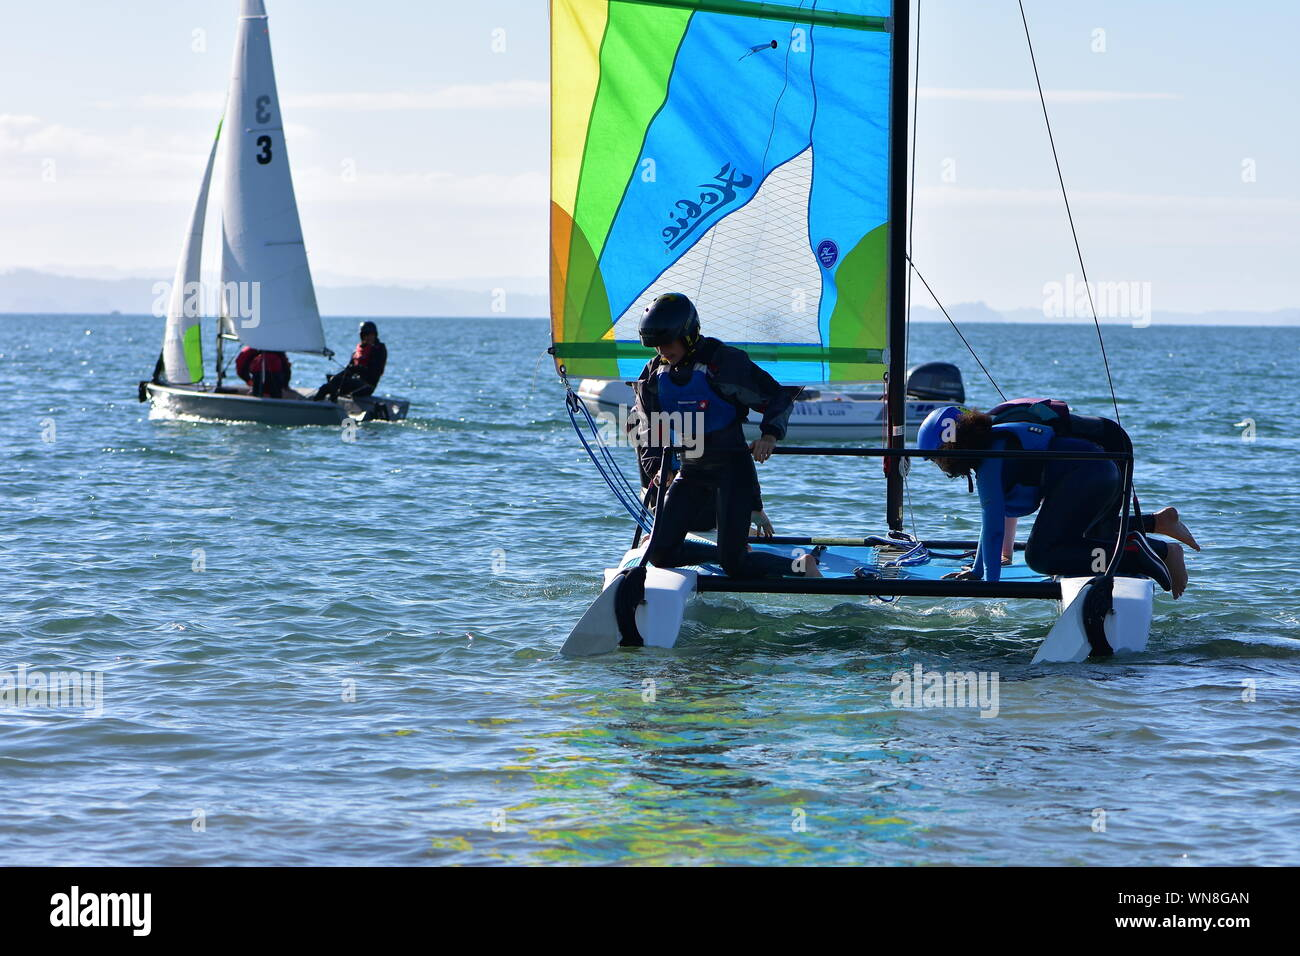 Crew of youngsters getting their racing sailing catamaran ready on water for training. Stock Photo